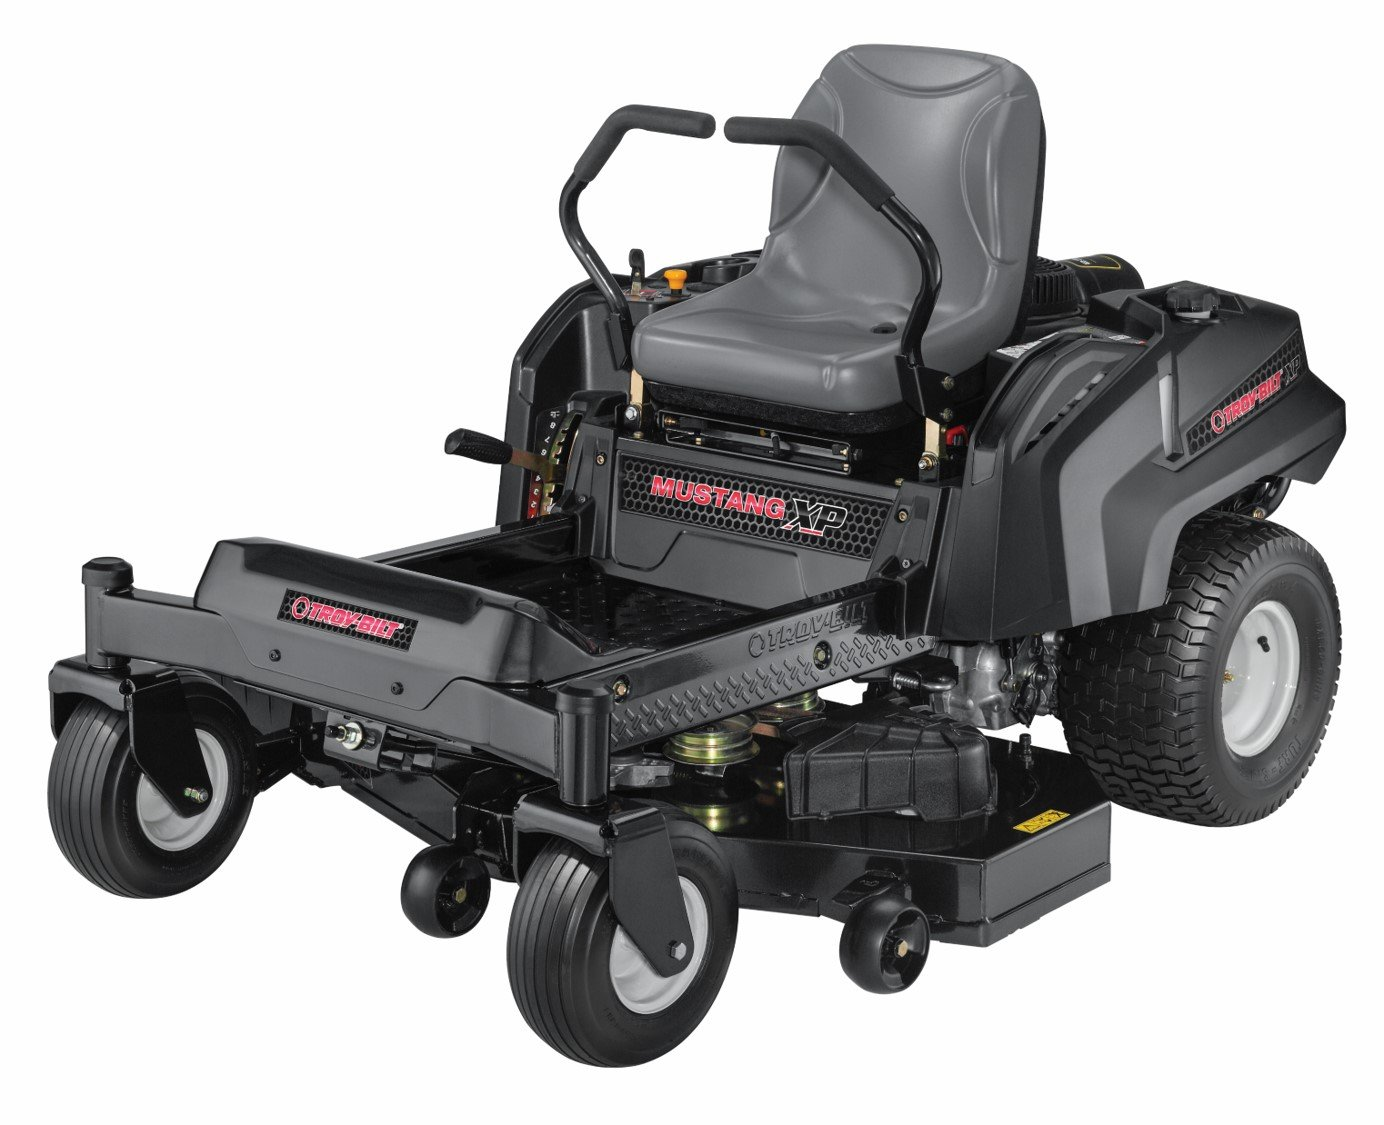 Troy-Bilt Super Mustang XP Riding Lawn Mower